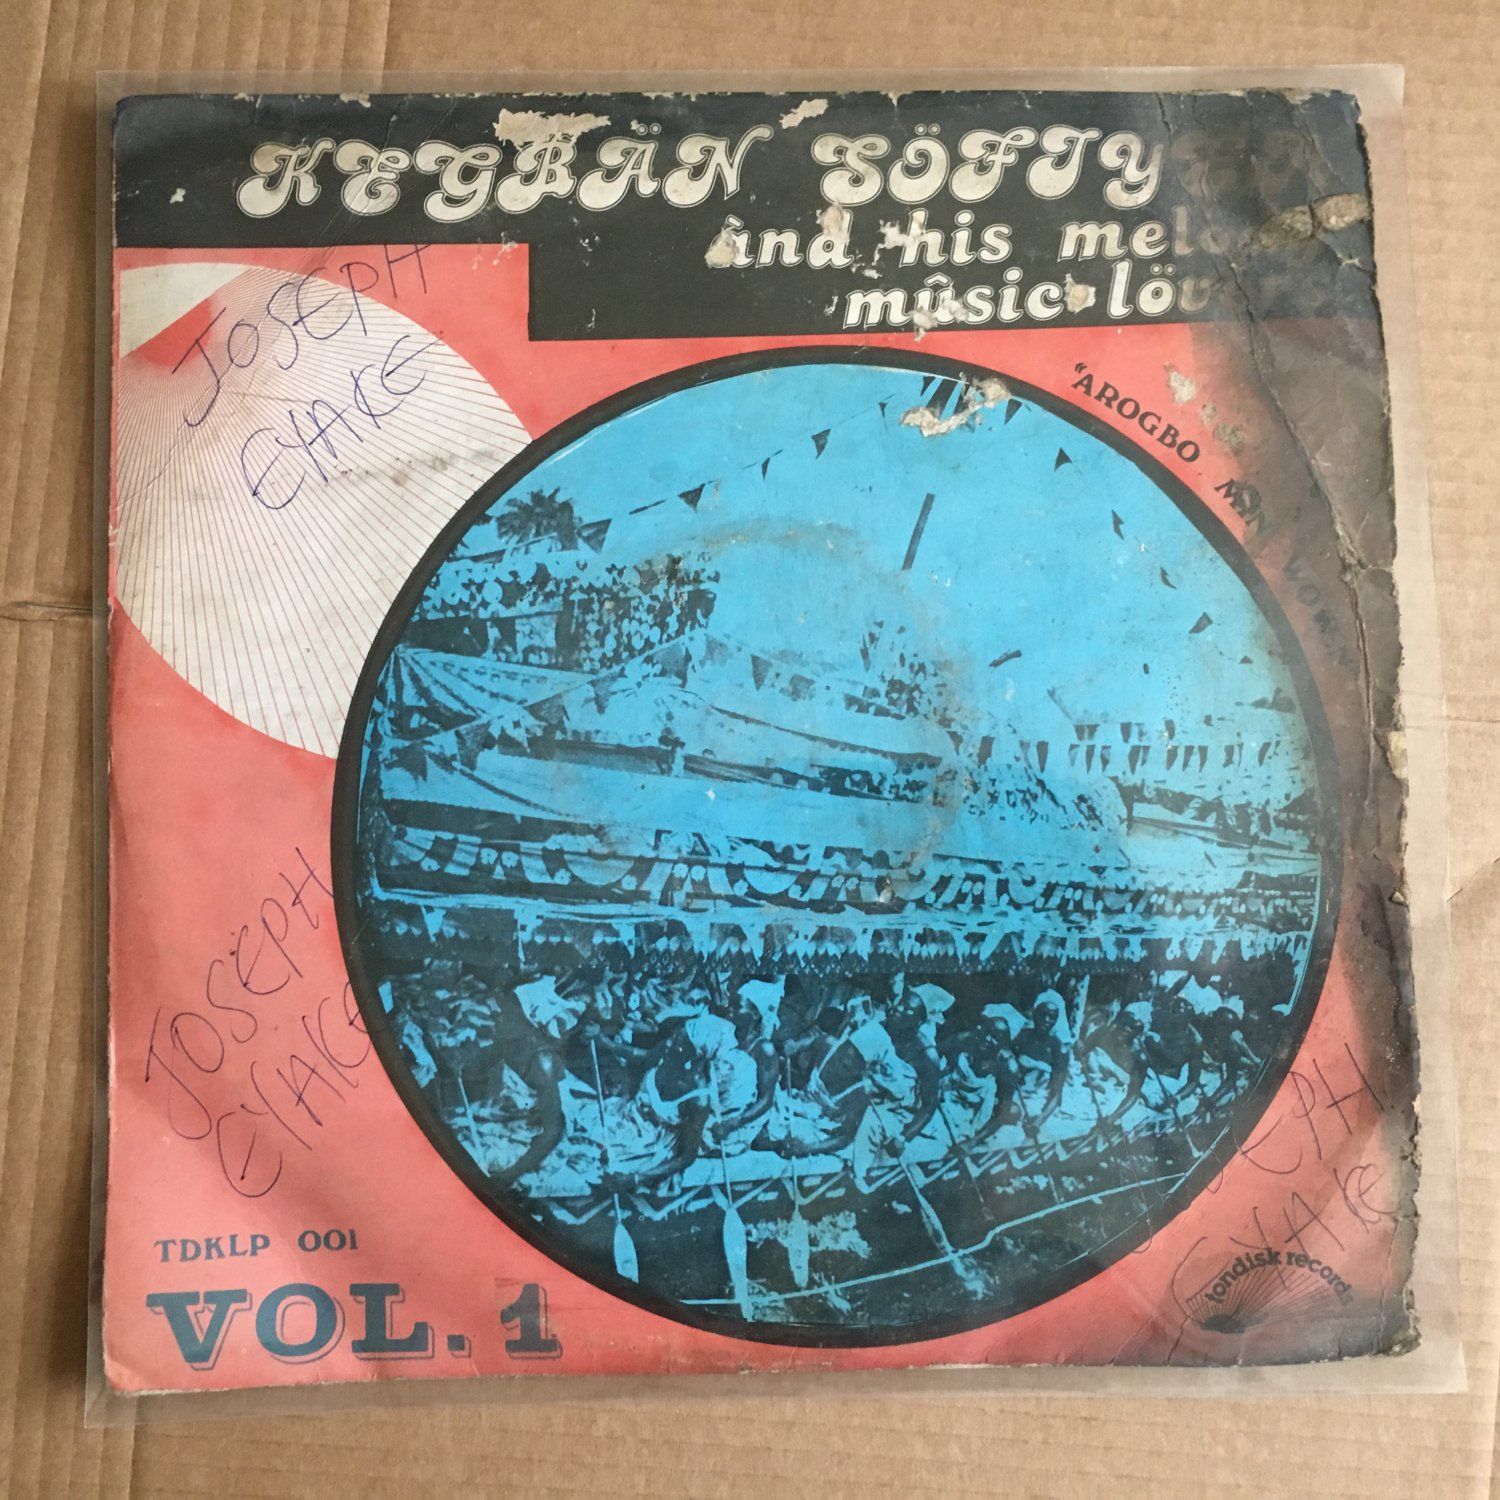 KEGBAN SOFIYEA & HIS MELODY MUSIC LOVERS LP vol. 1 NIGERIA HIGHLIFE mp3 LISTEN